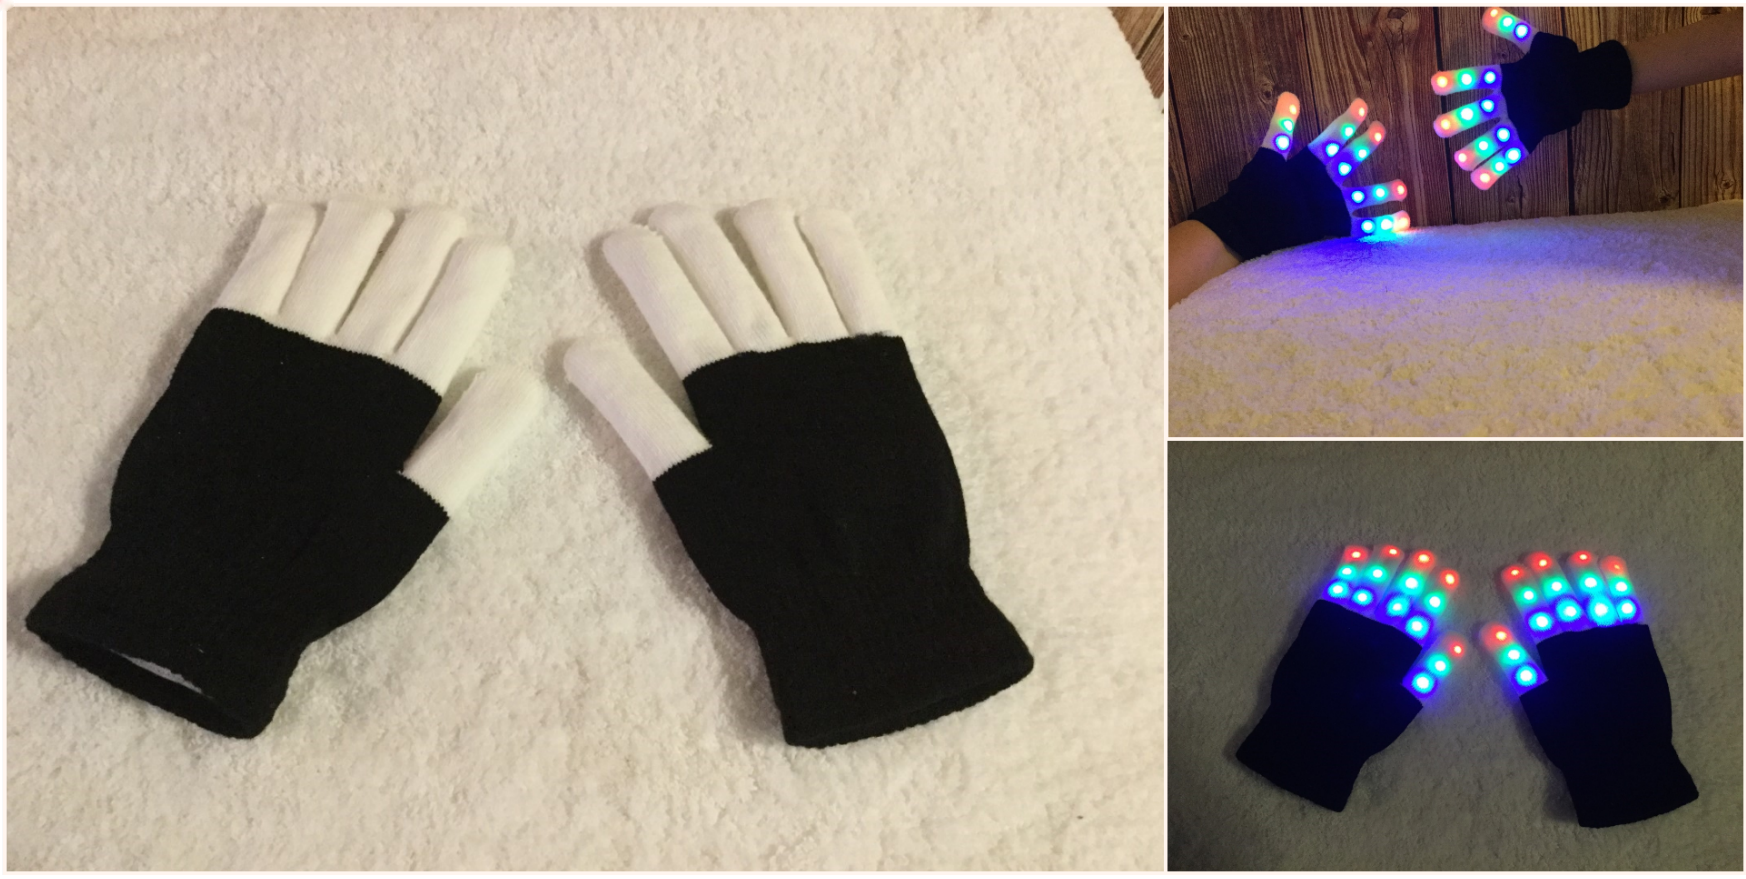 gloves with light up fingers